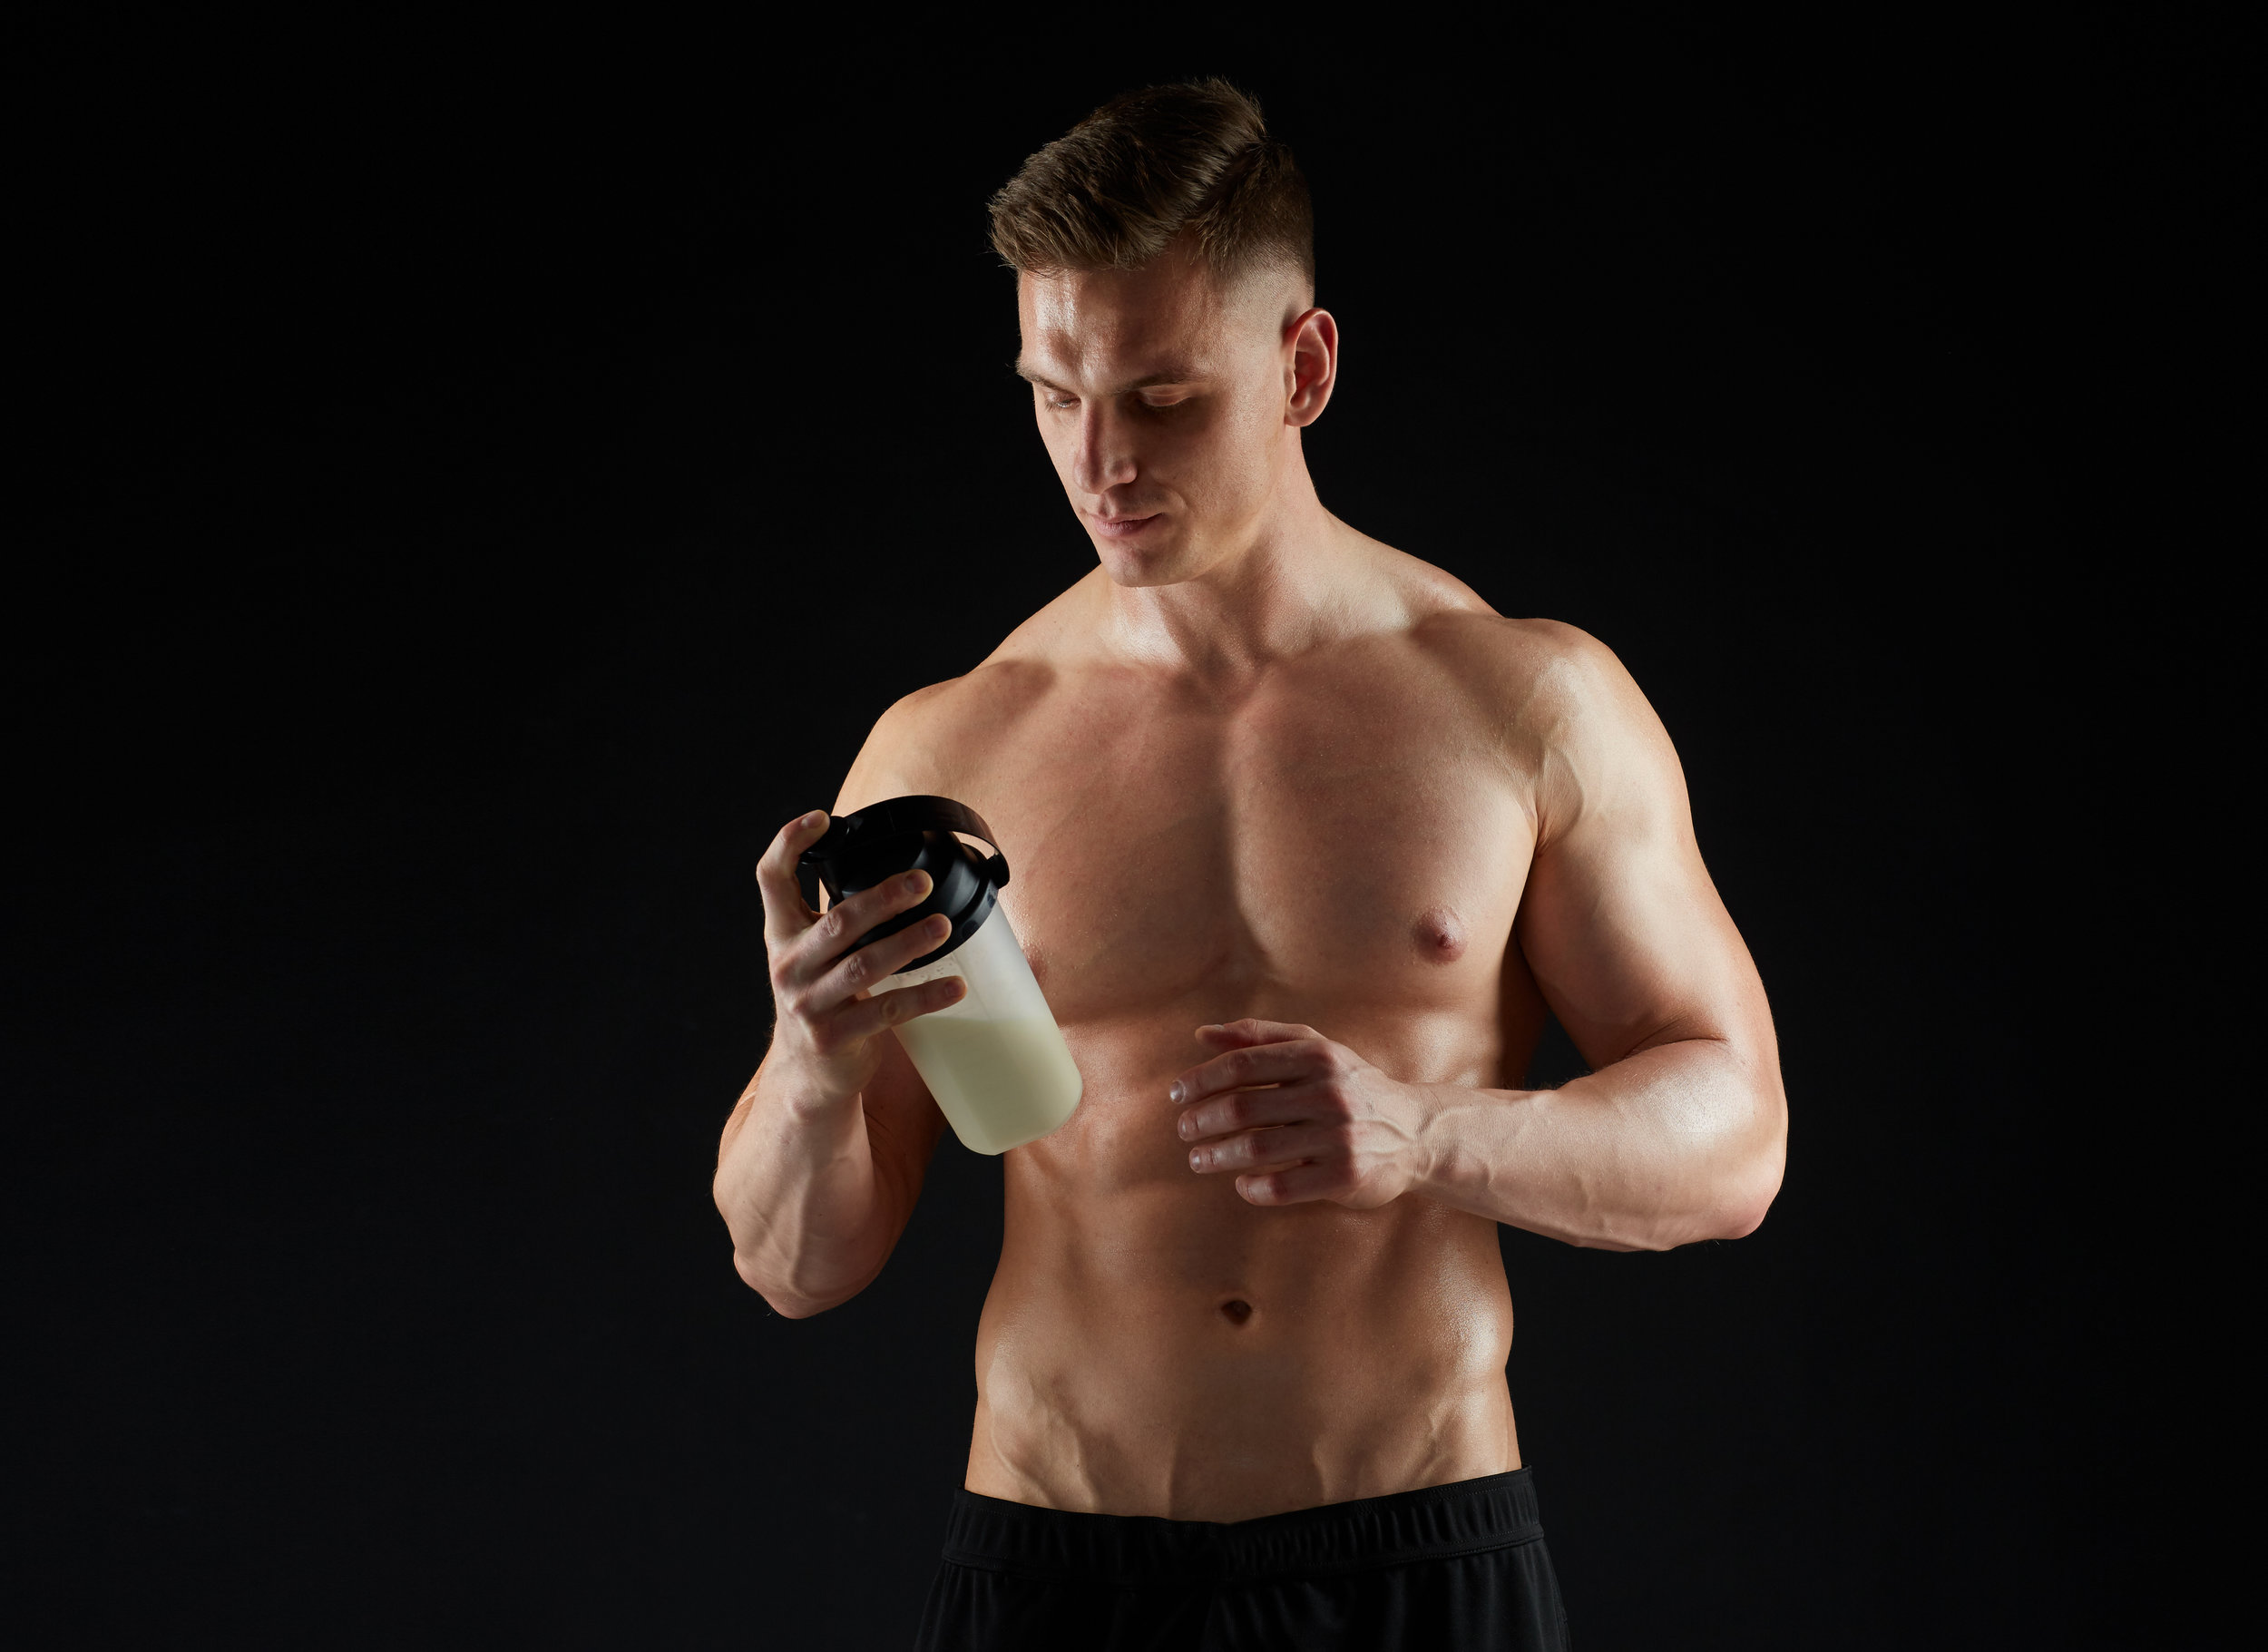 young-man-or-bodybuilder-with-protein-shake-PEXR7EE.jpg